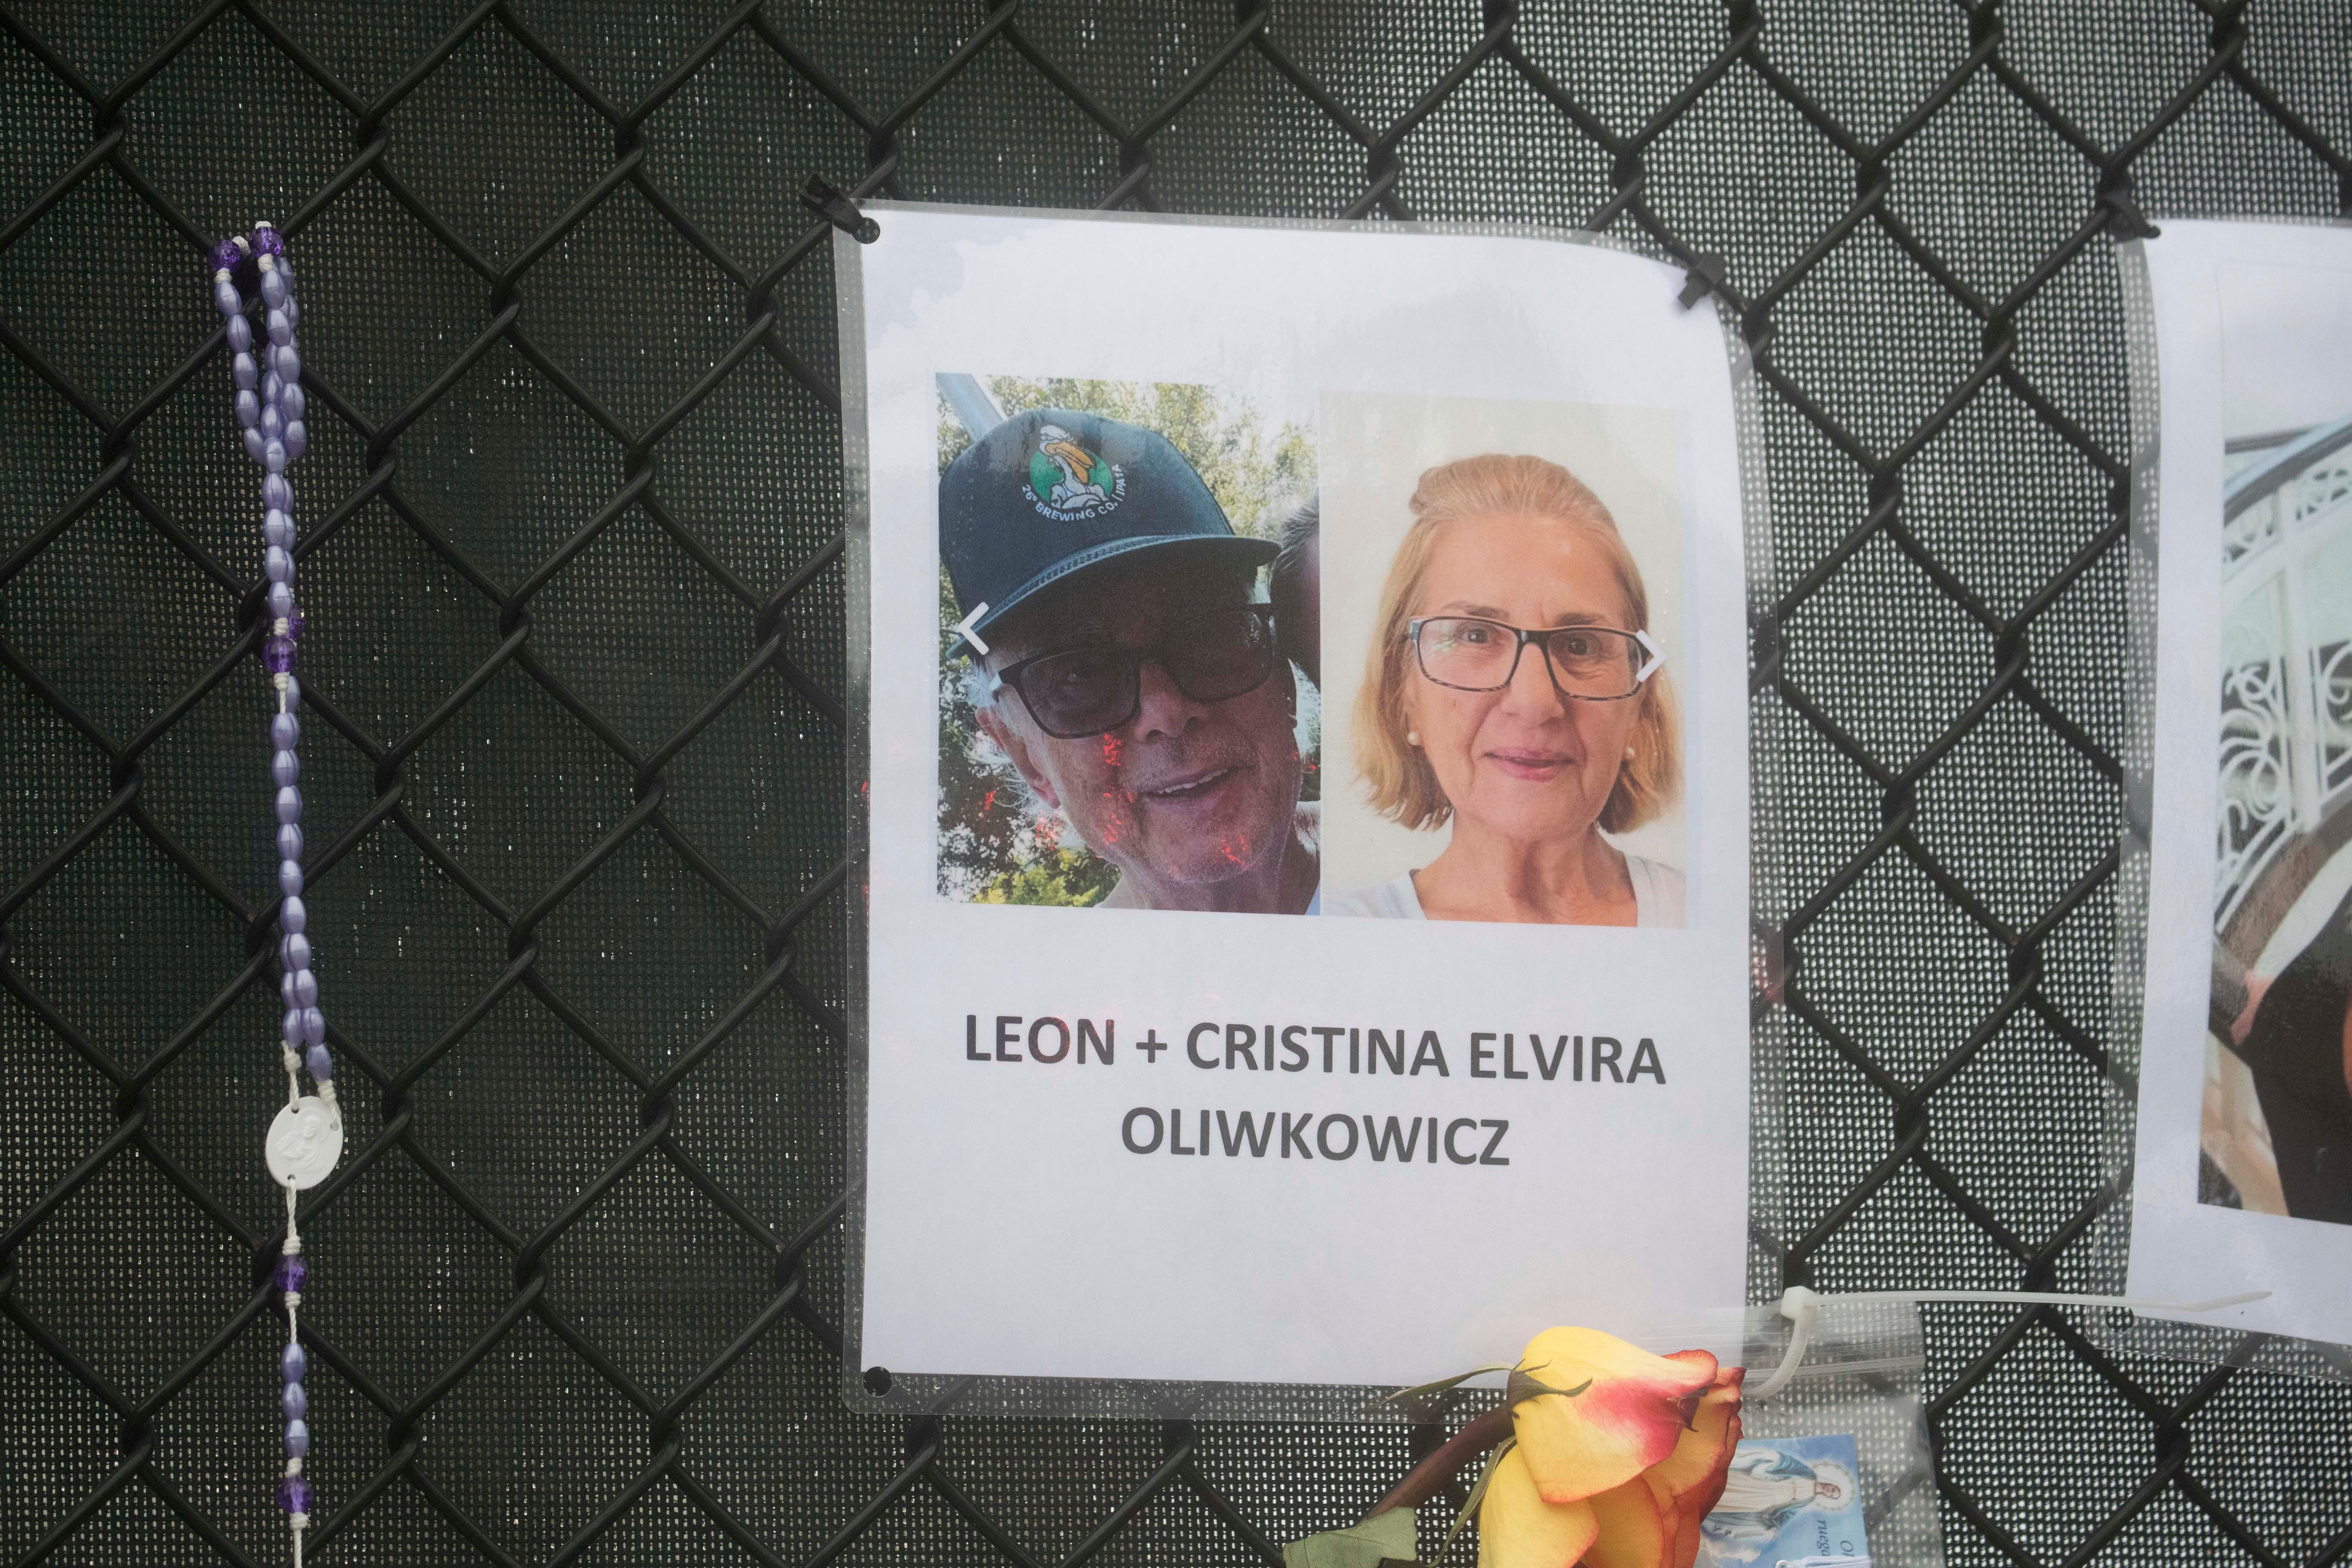 Leon Oliwkowicz and Cristina Beatriz Elvira (aka Cristina Oliwkowicz) lived in Unit 704 of the Champlain Towers South. Their bodies were identified days after the Surfside, Florida, building collapsed on Thursday, June 24, 2021.